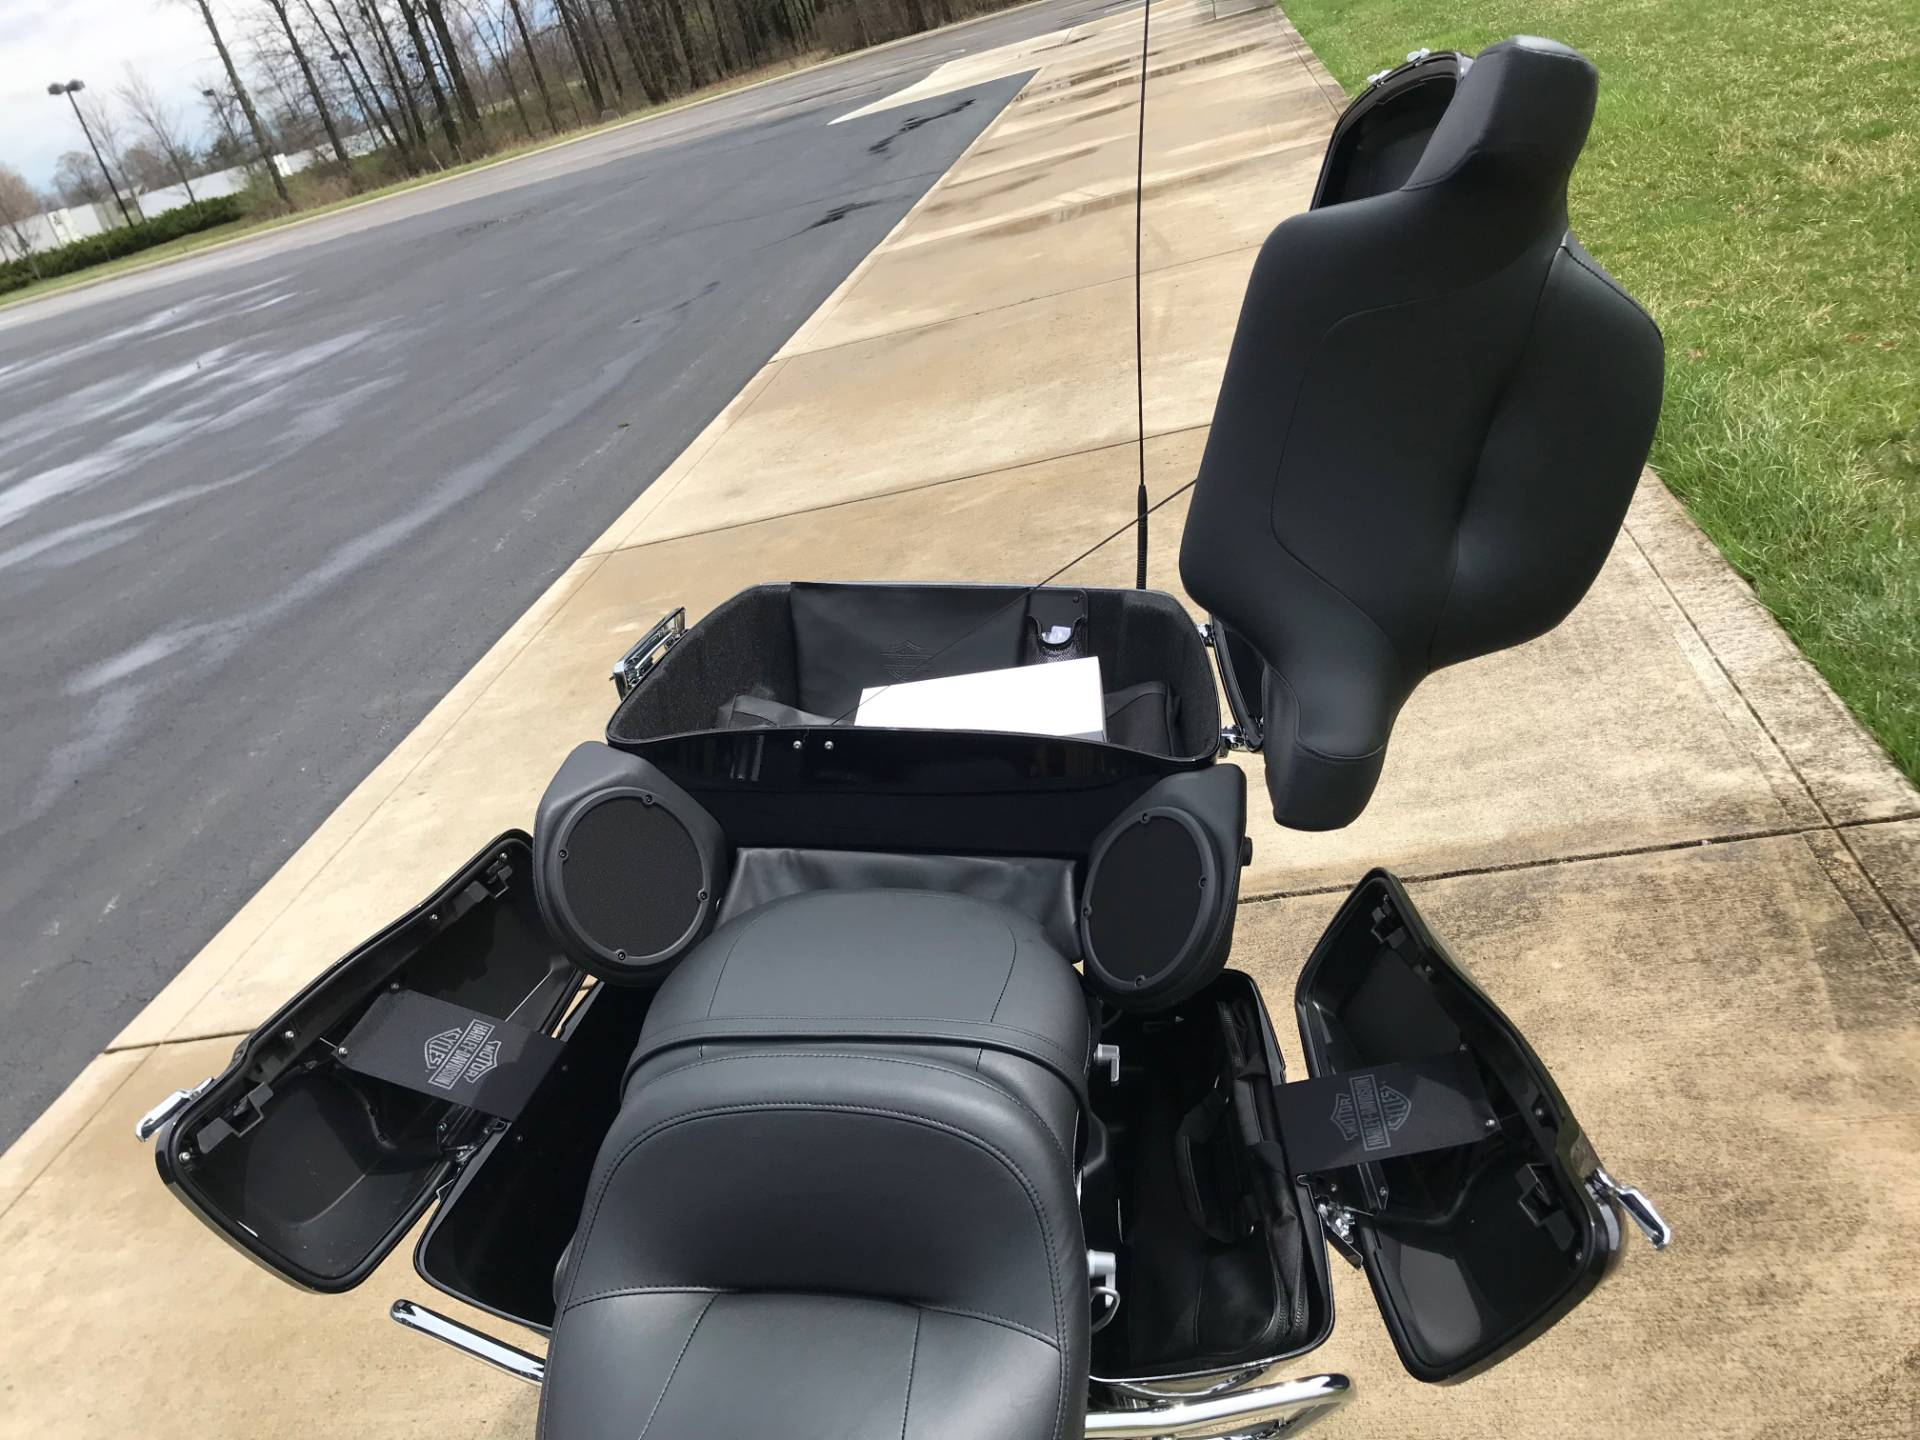 2019 Harley-Davidson Ultra Limited in Sunbury, Ohio - Photo 14